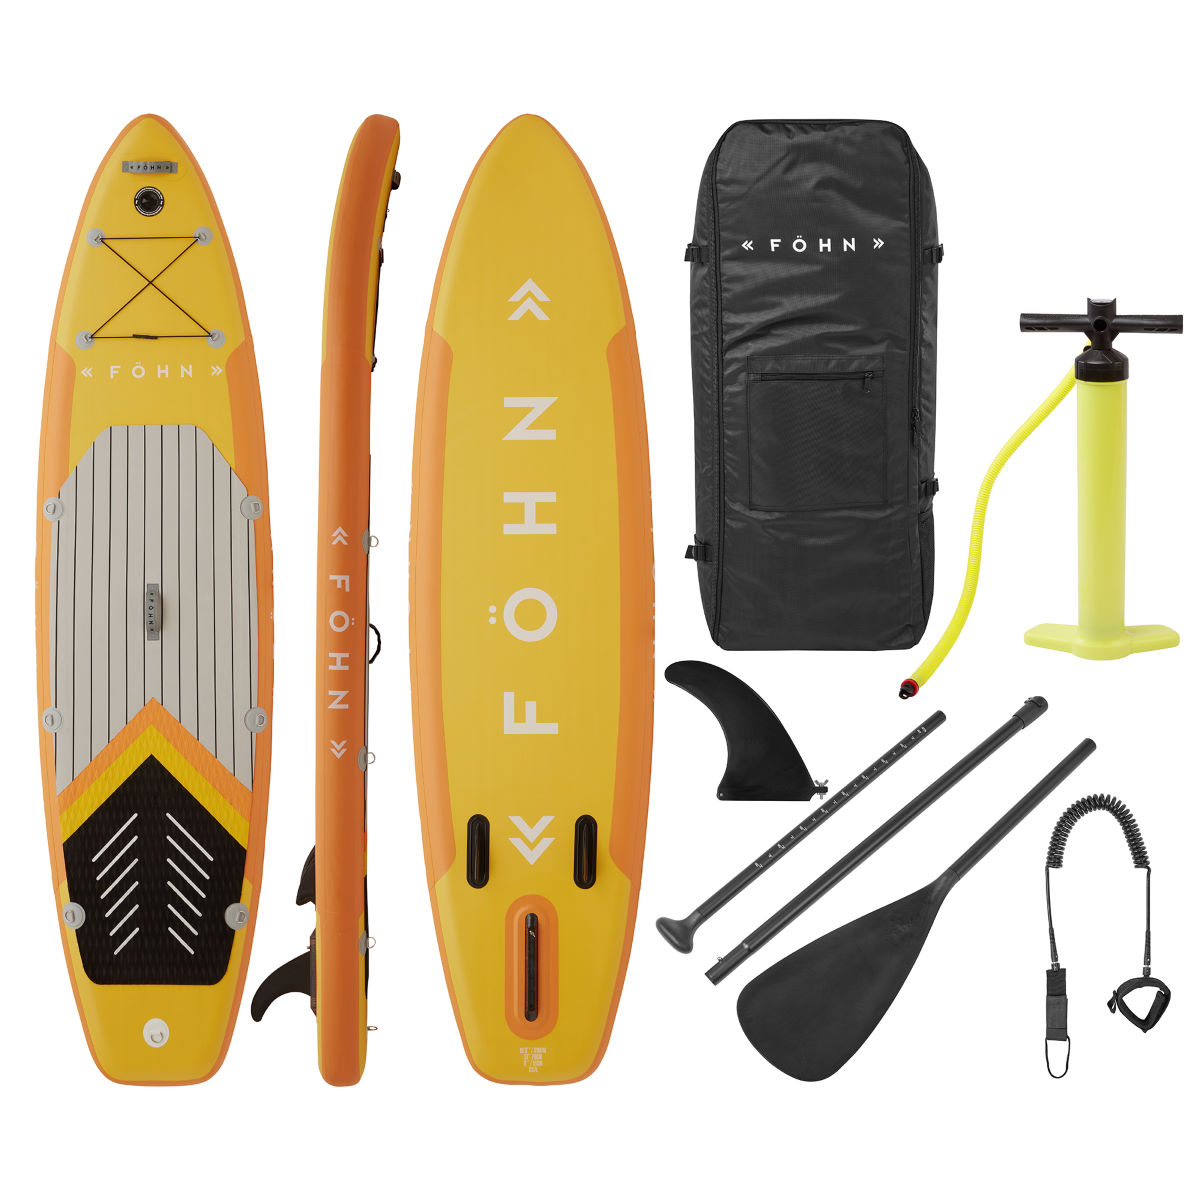 Fhn Adventure 102 Stand Up Paddle Board Package - One Size Yellow